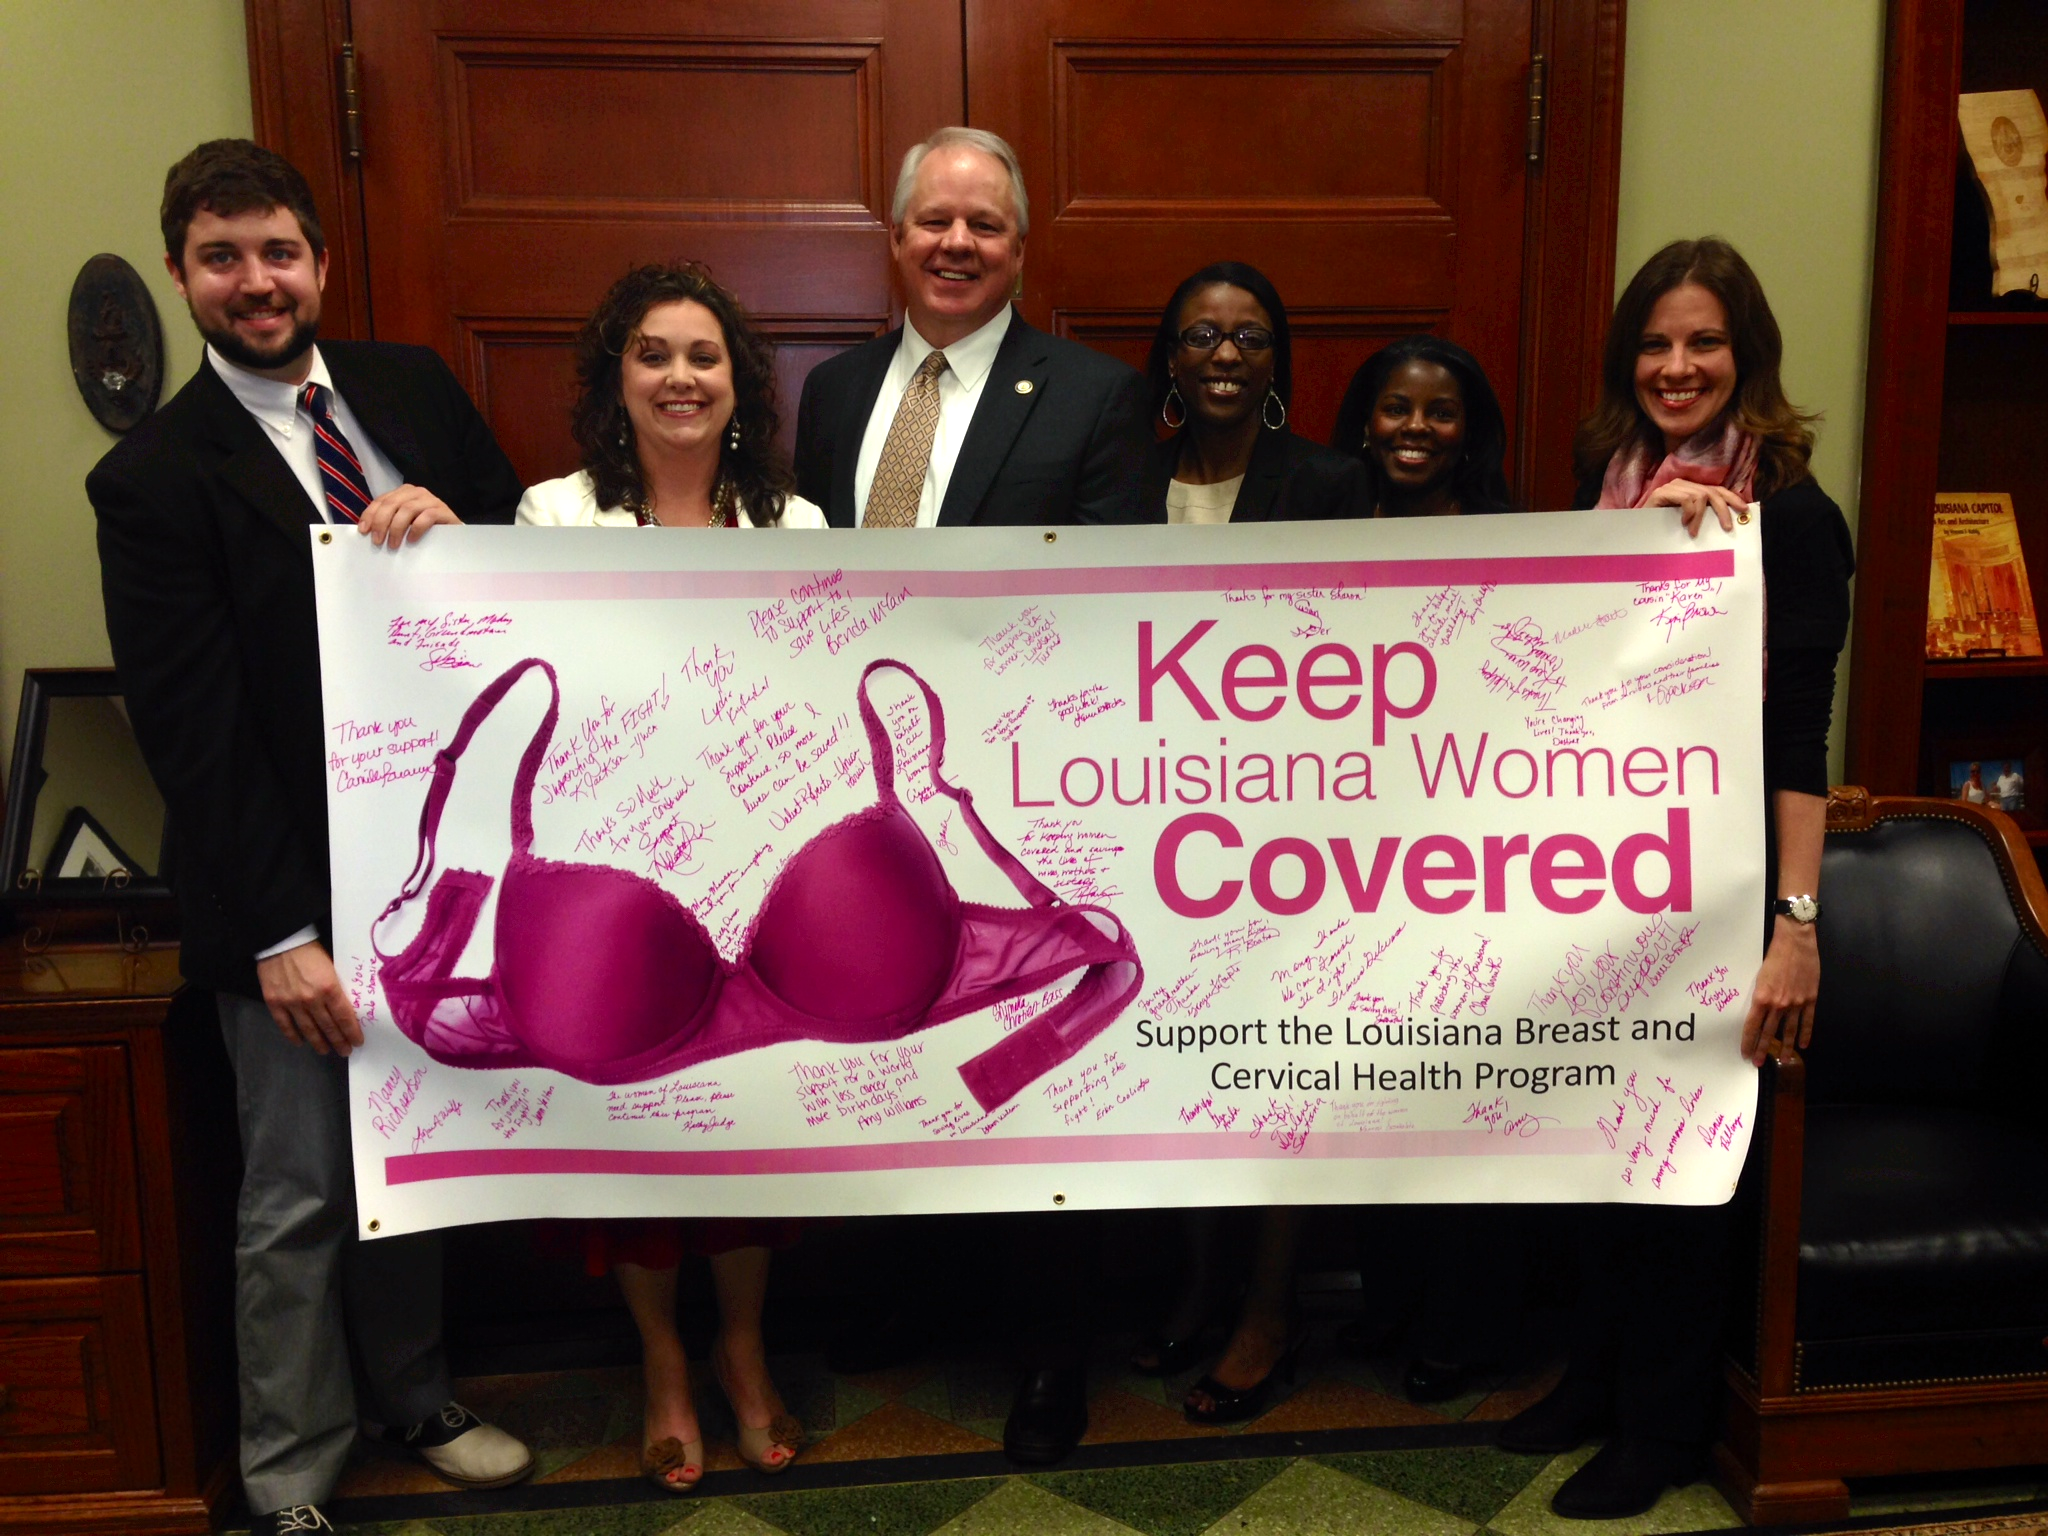 Pictured, left to right: Ryan West, American Cancer Society; Heather Blanchard, Acadiana Affiliate of Susan G. Komen; House Speaker Chuck Kleckley; Nannozi Ssenkoloto, LBCHP Program Manager; Tiffany Carriere, Baton Rouge Affiliate of Susan G. Komen; and Lydia Kuykendal, Louisiana Cancer Prevention and Control Program Policy Coordinator. April 2014.